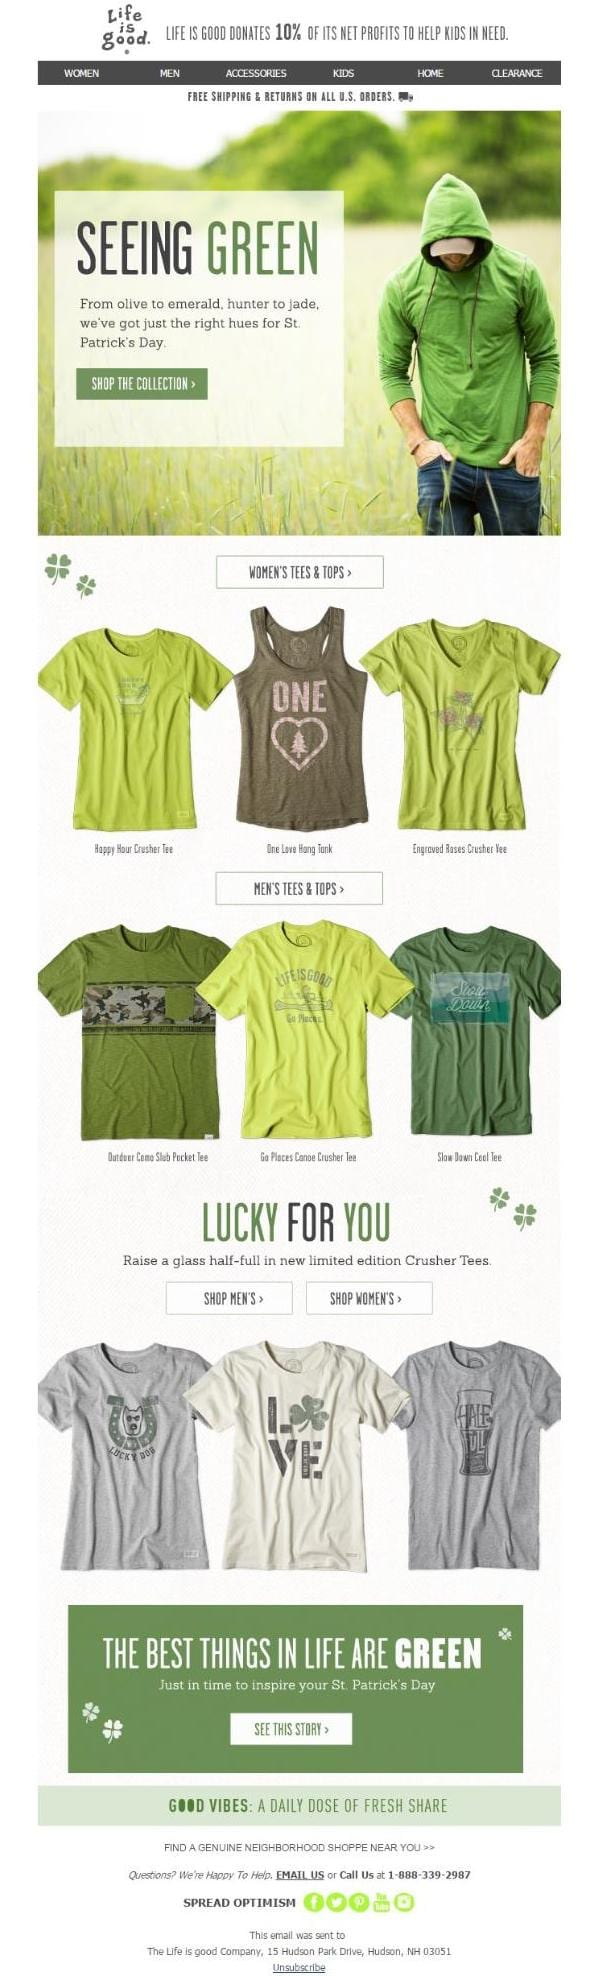 17 Clever St. Patrick's Day Email Campaigns